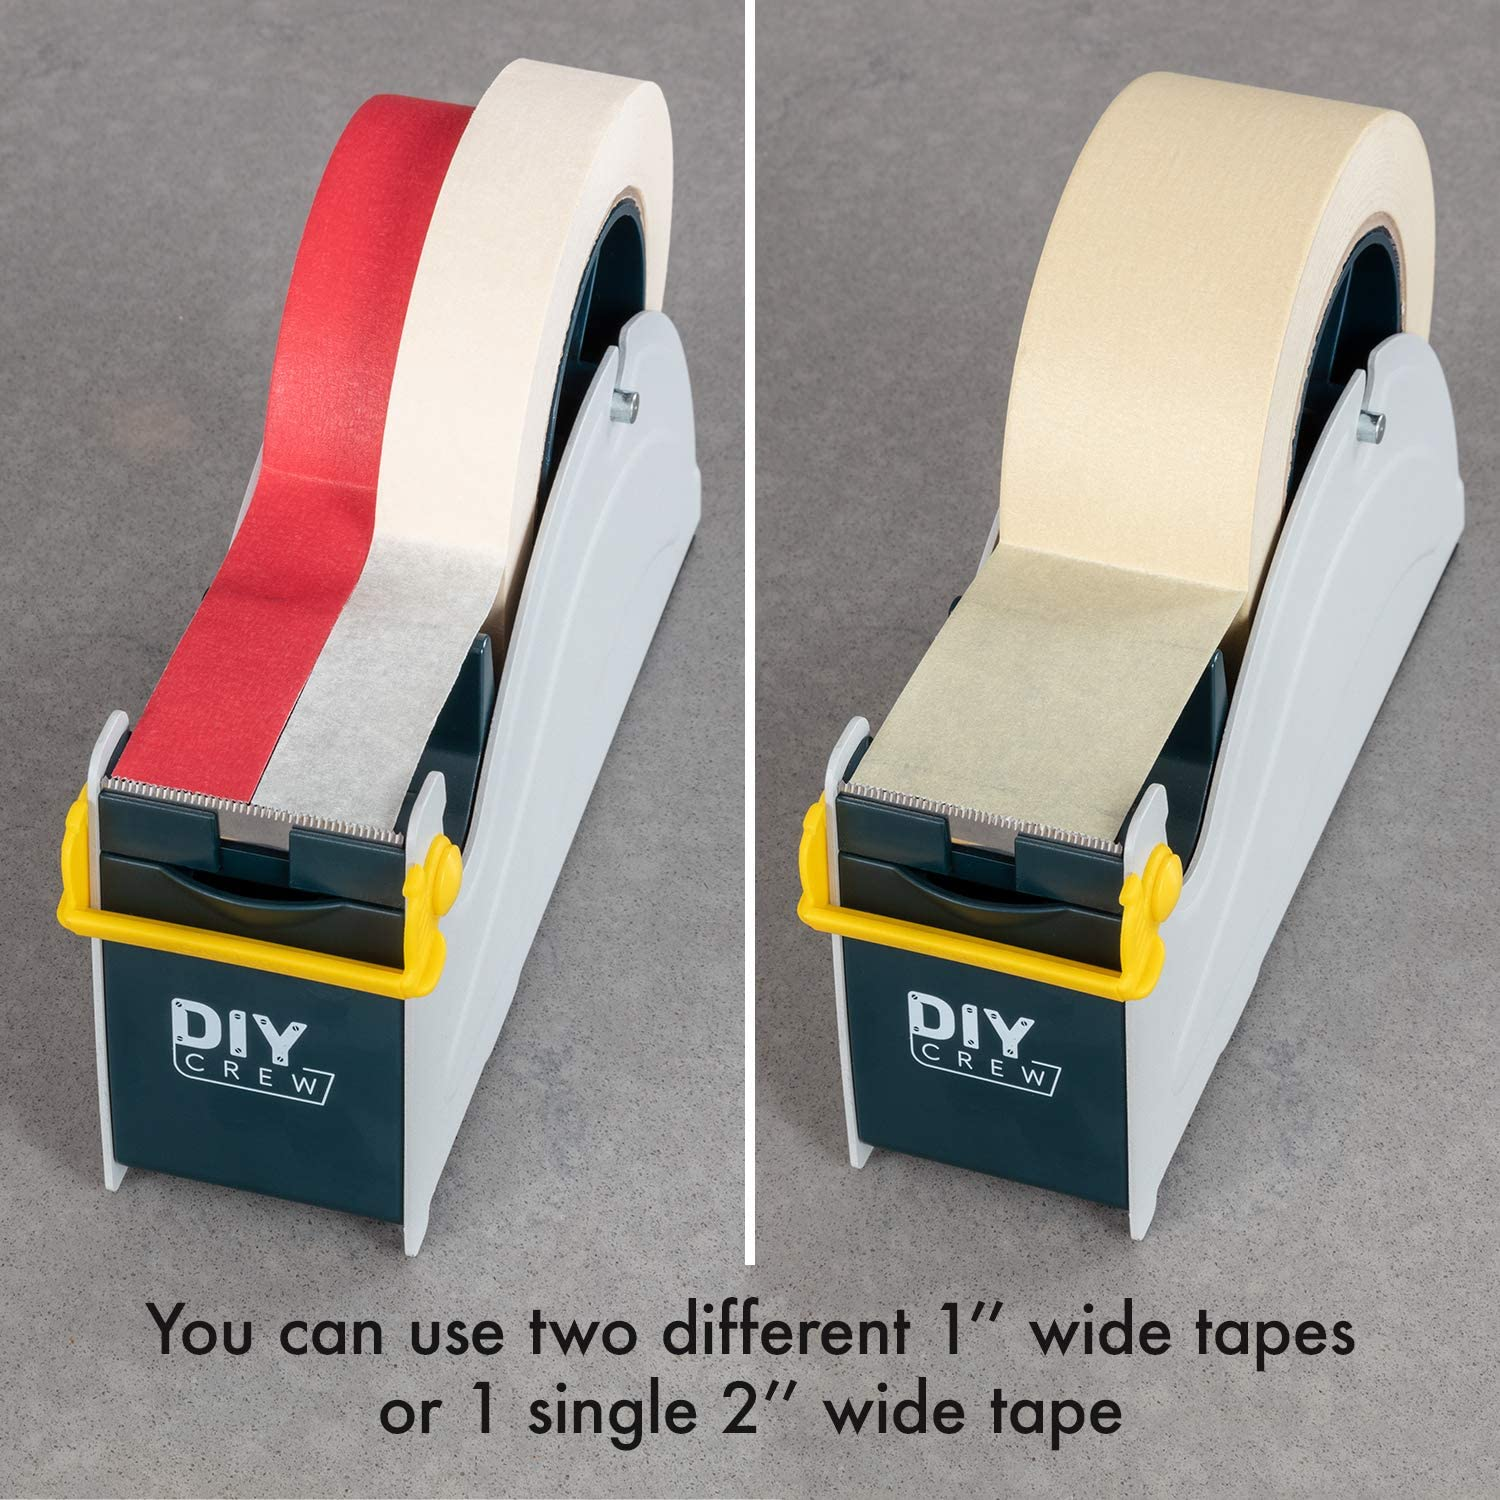 Weighted Tape Dispenser Tape Holder for Two 1 Inch Wide Tapes Or One 2 Inch Easy One Hand Operation Double Tape Dispenser